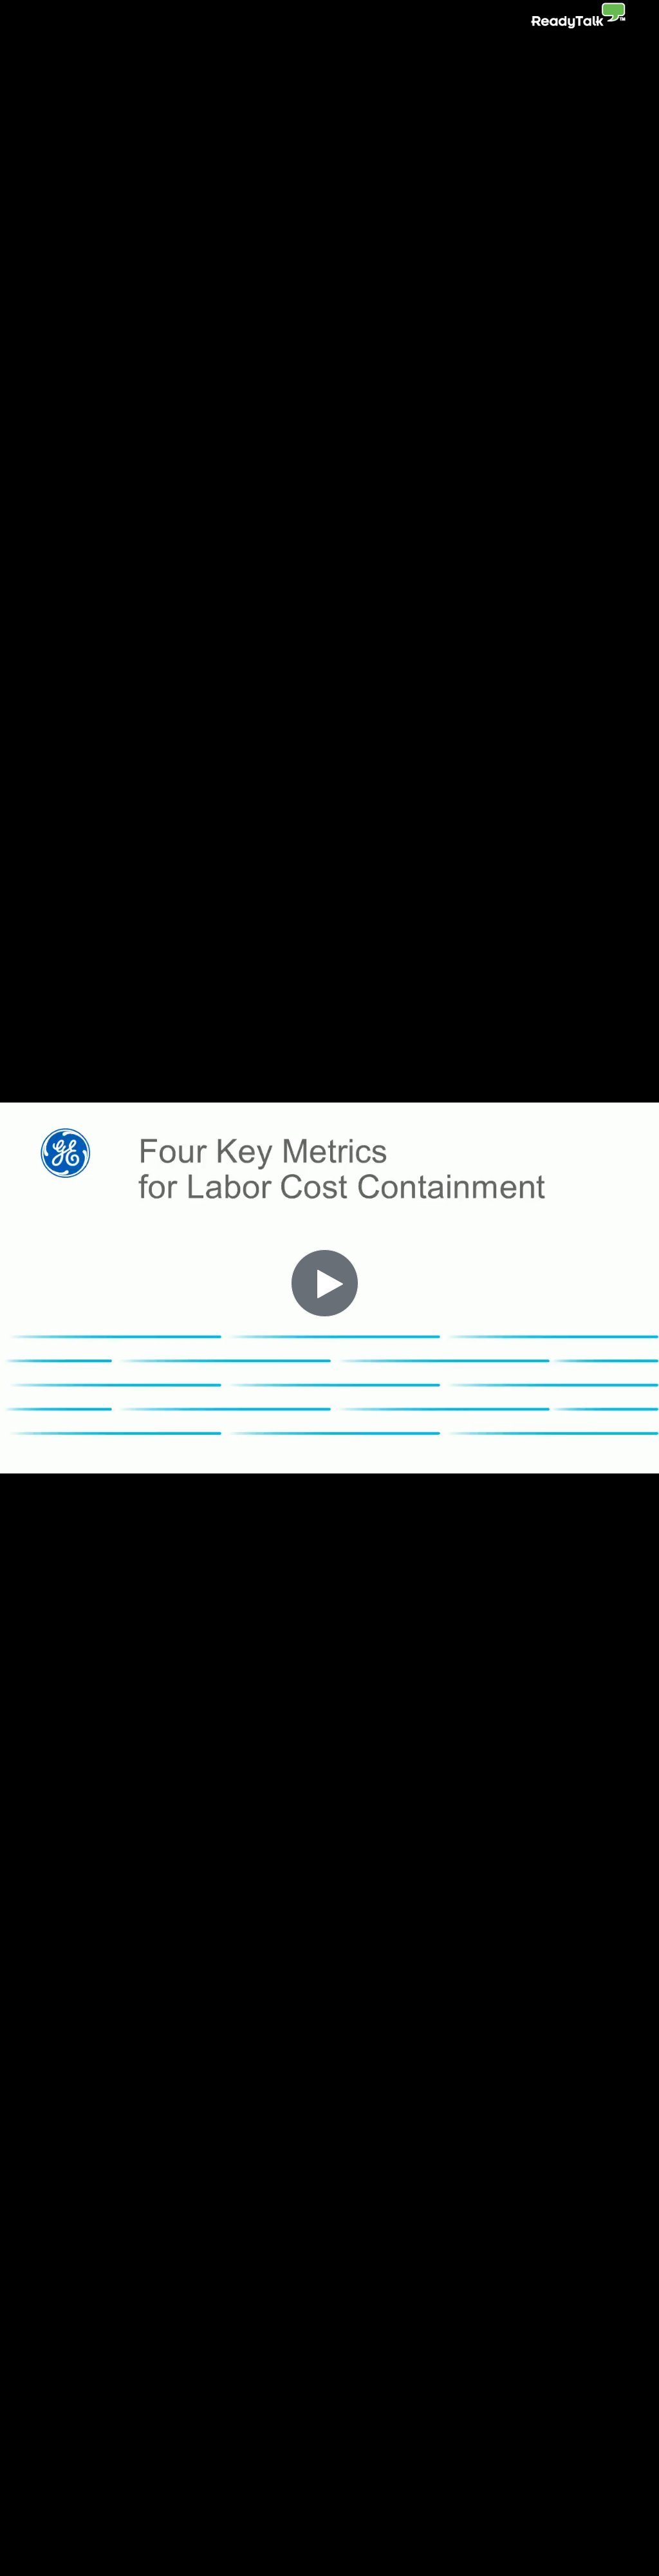 4 Key Metrics for Labor Cost Containment